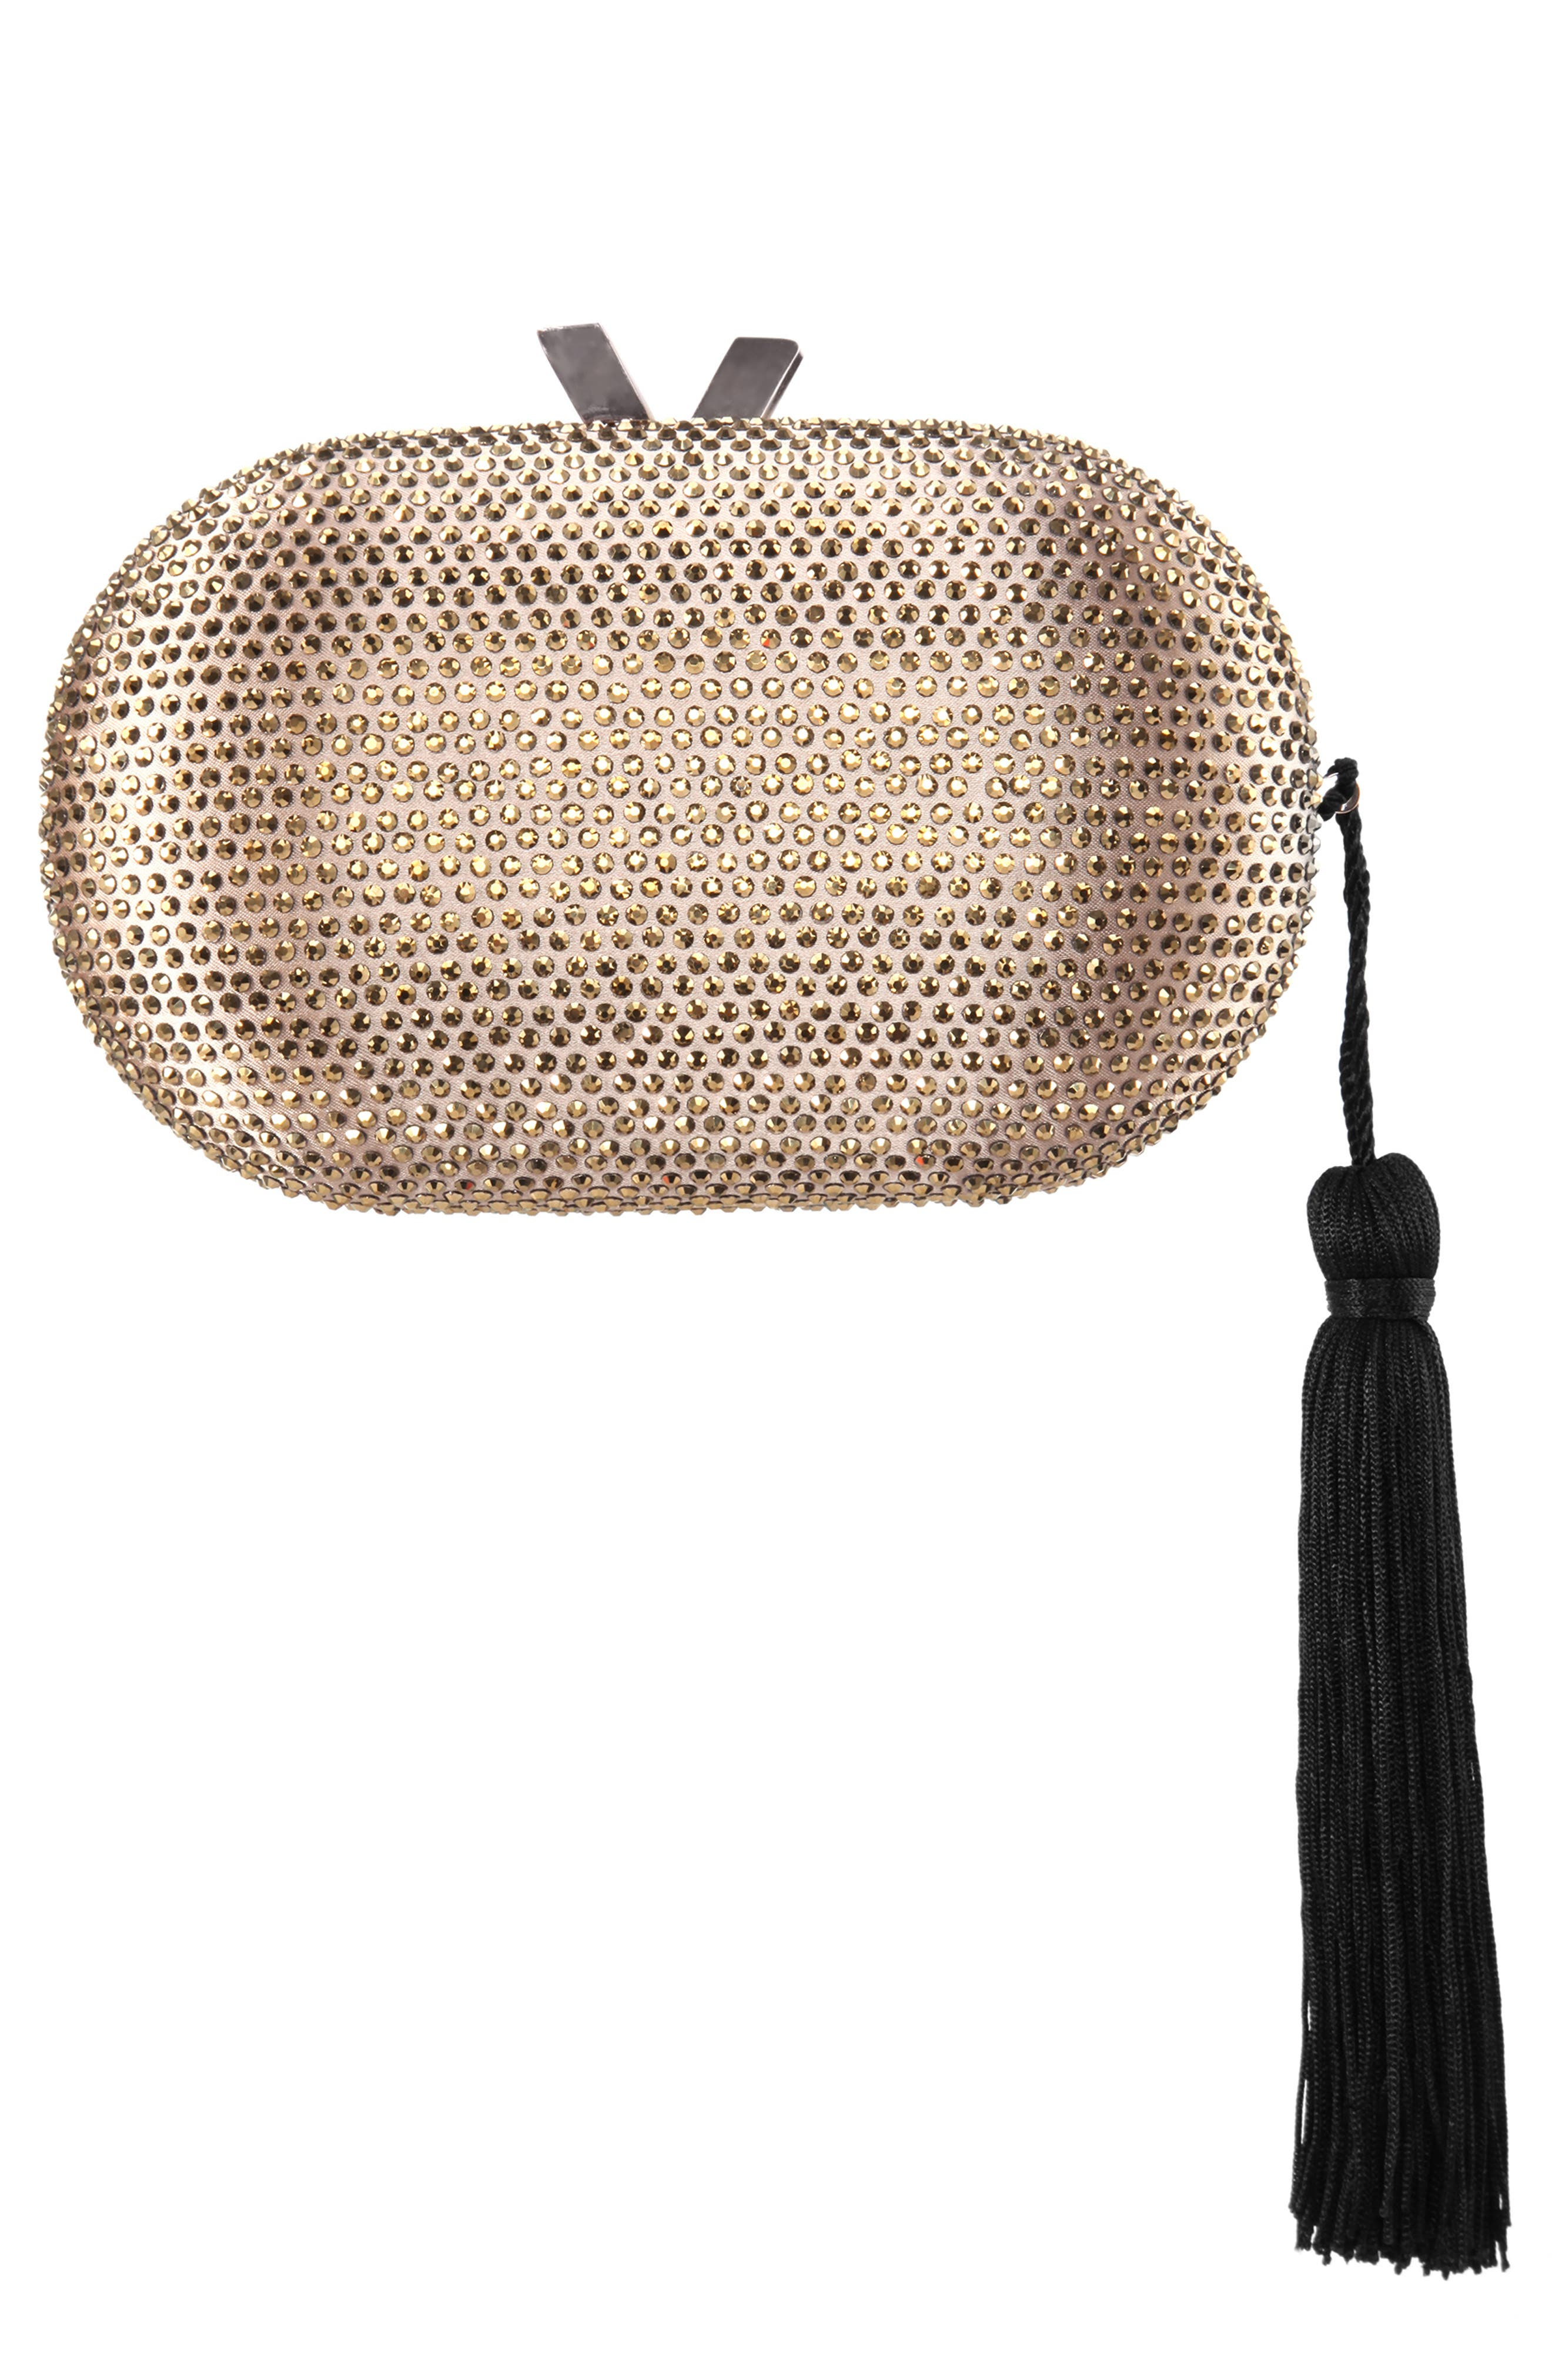 NINA, Oval Minaudière with Tassel, Main thumbnail 1, color, DARK GOLD